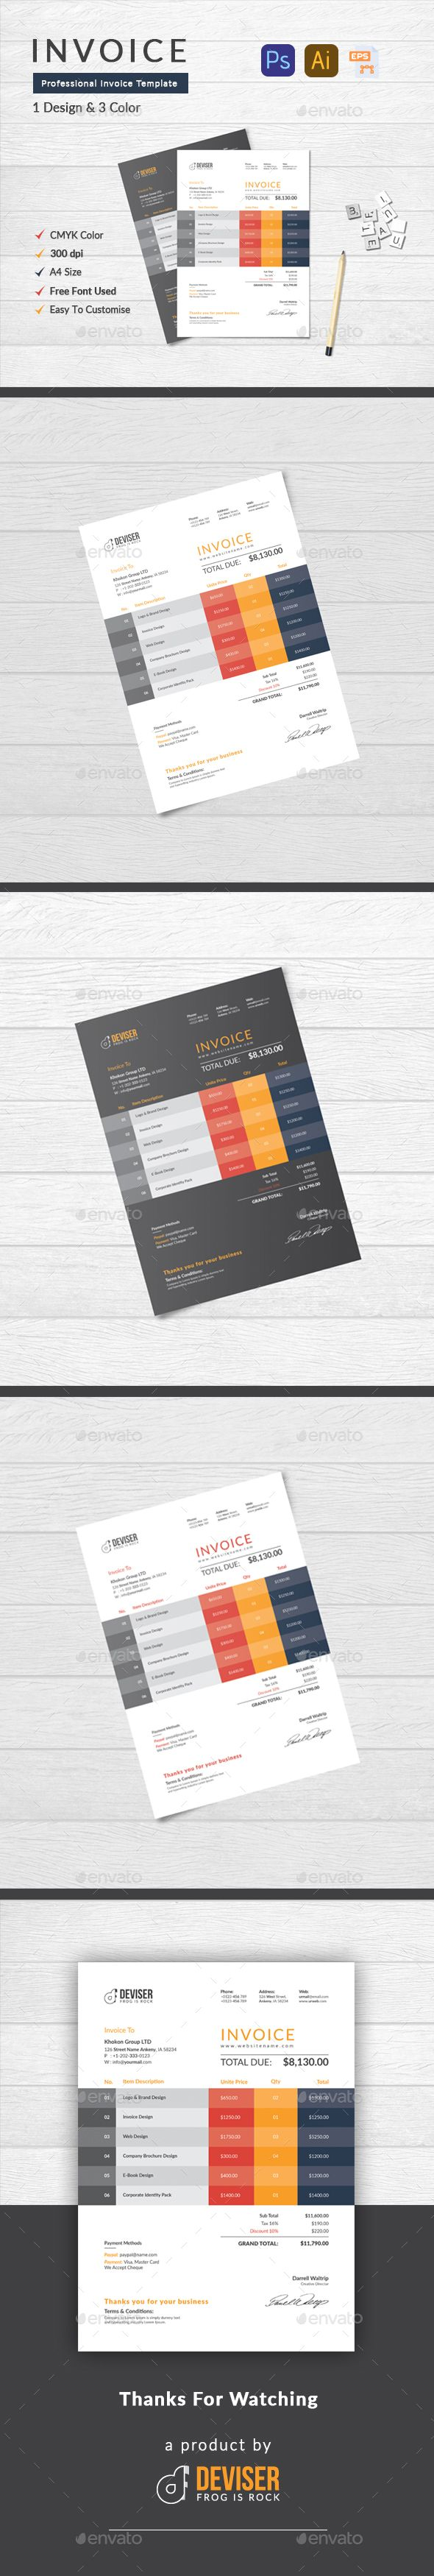 best ideas about invoice template invoice design corporate invoice template business company stationery print